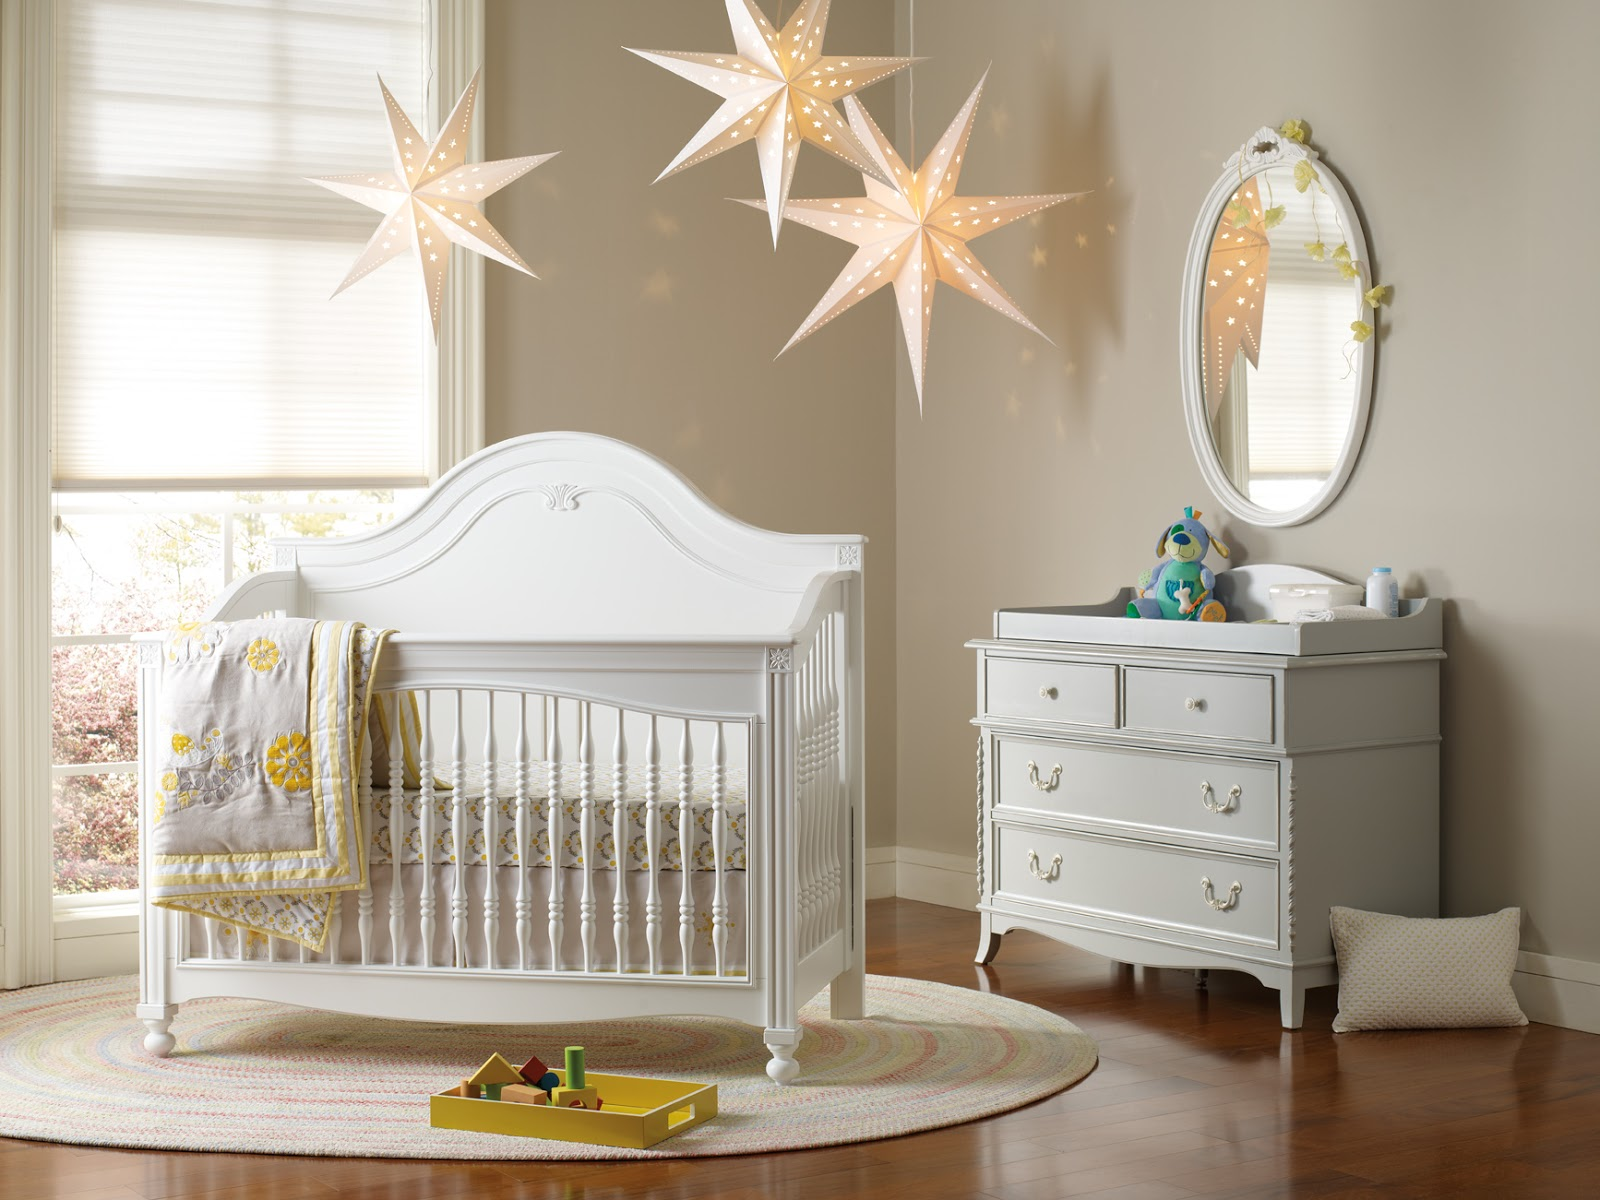 ikea baby room via